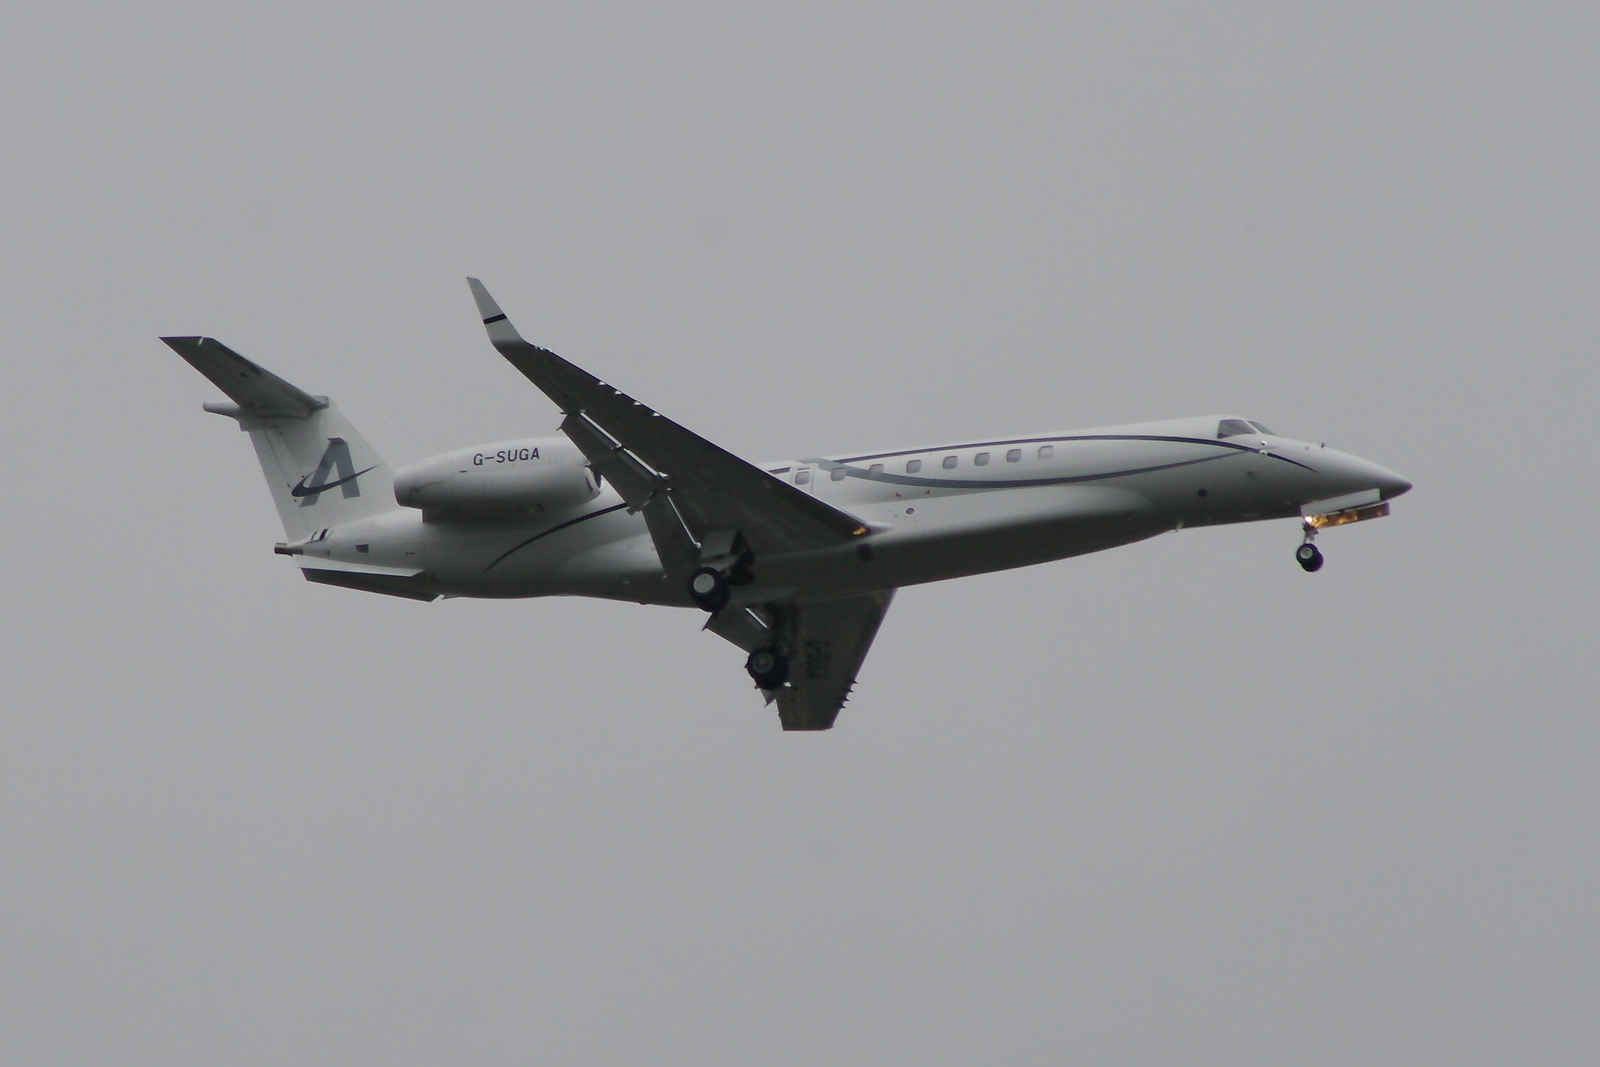 G-SUGA An Embraer EMB-135BJ Legacy 650 of Amsair on approach to Glasgow Airport. Owned by Lord Sugar, it is the first Legacy 650 on the UK registry and operated by Air Charter Scotland. It is now owned and operated by Embraer Executive Aircraft